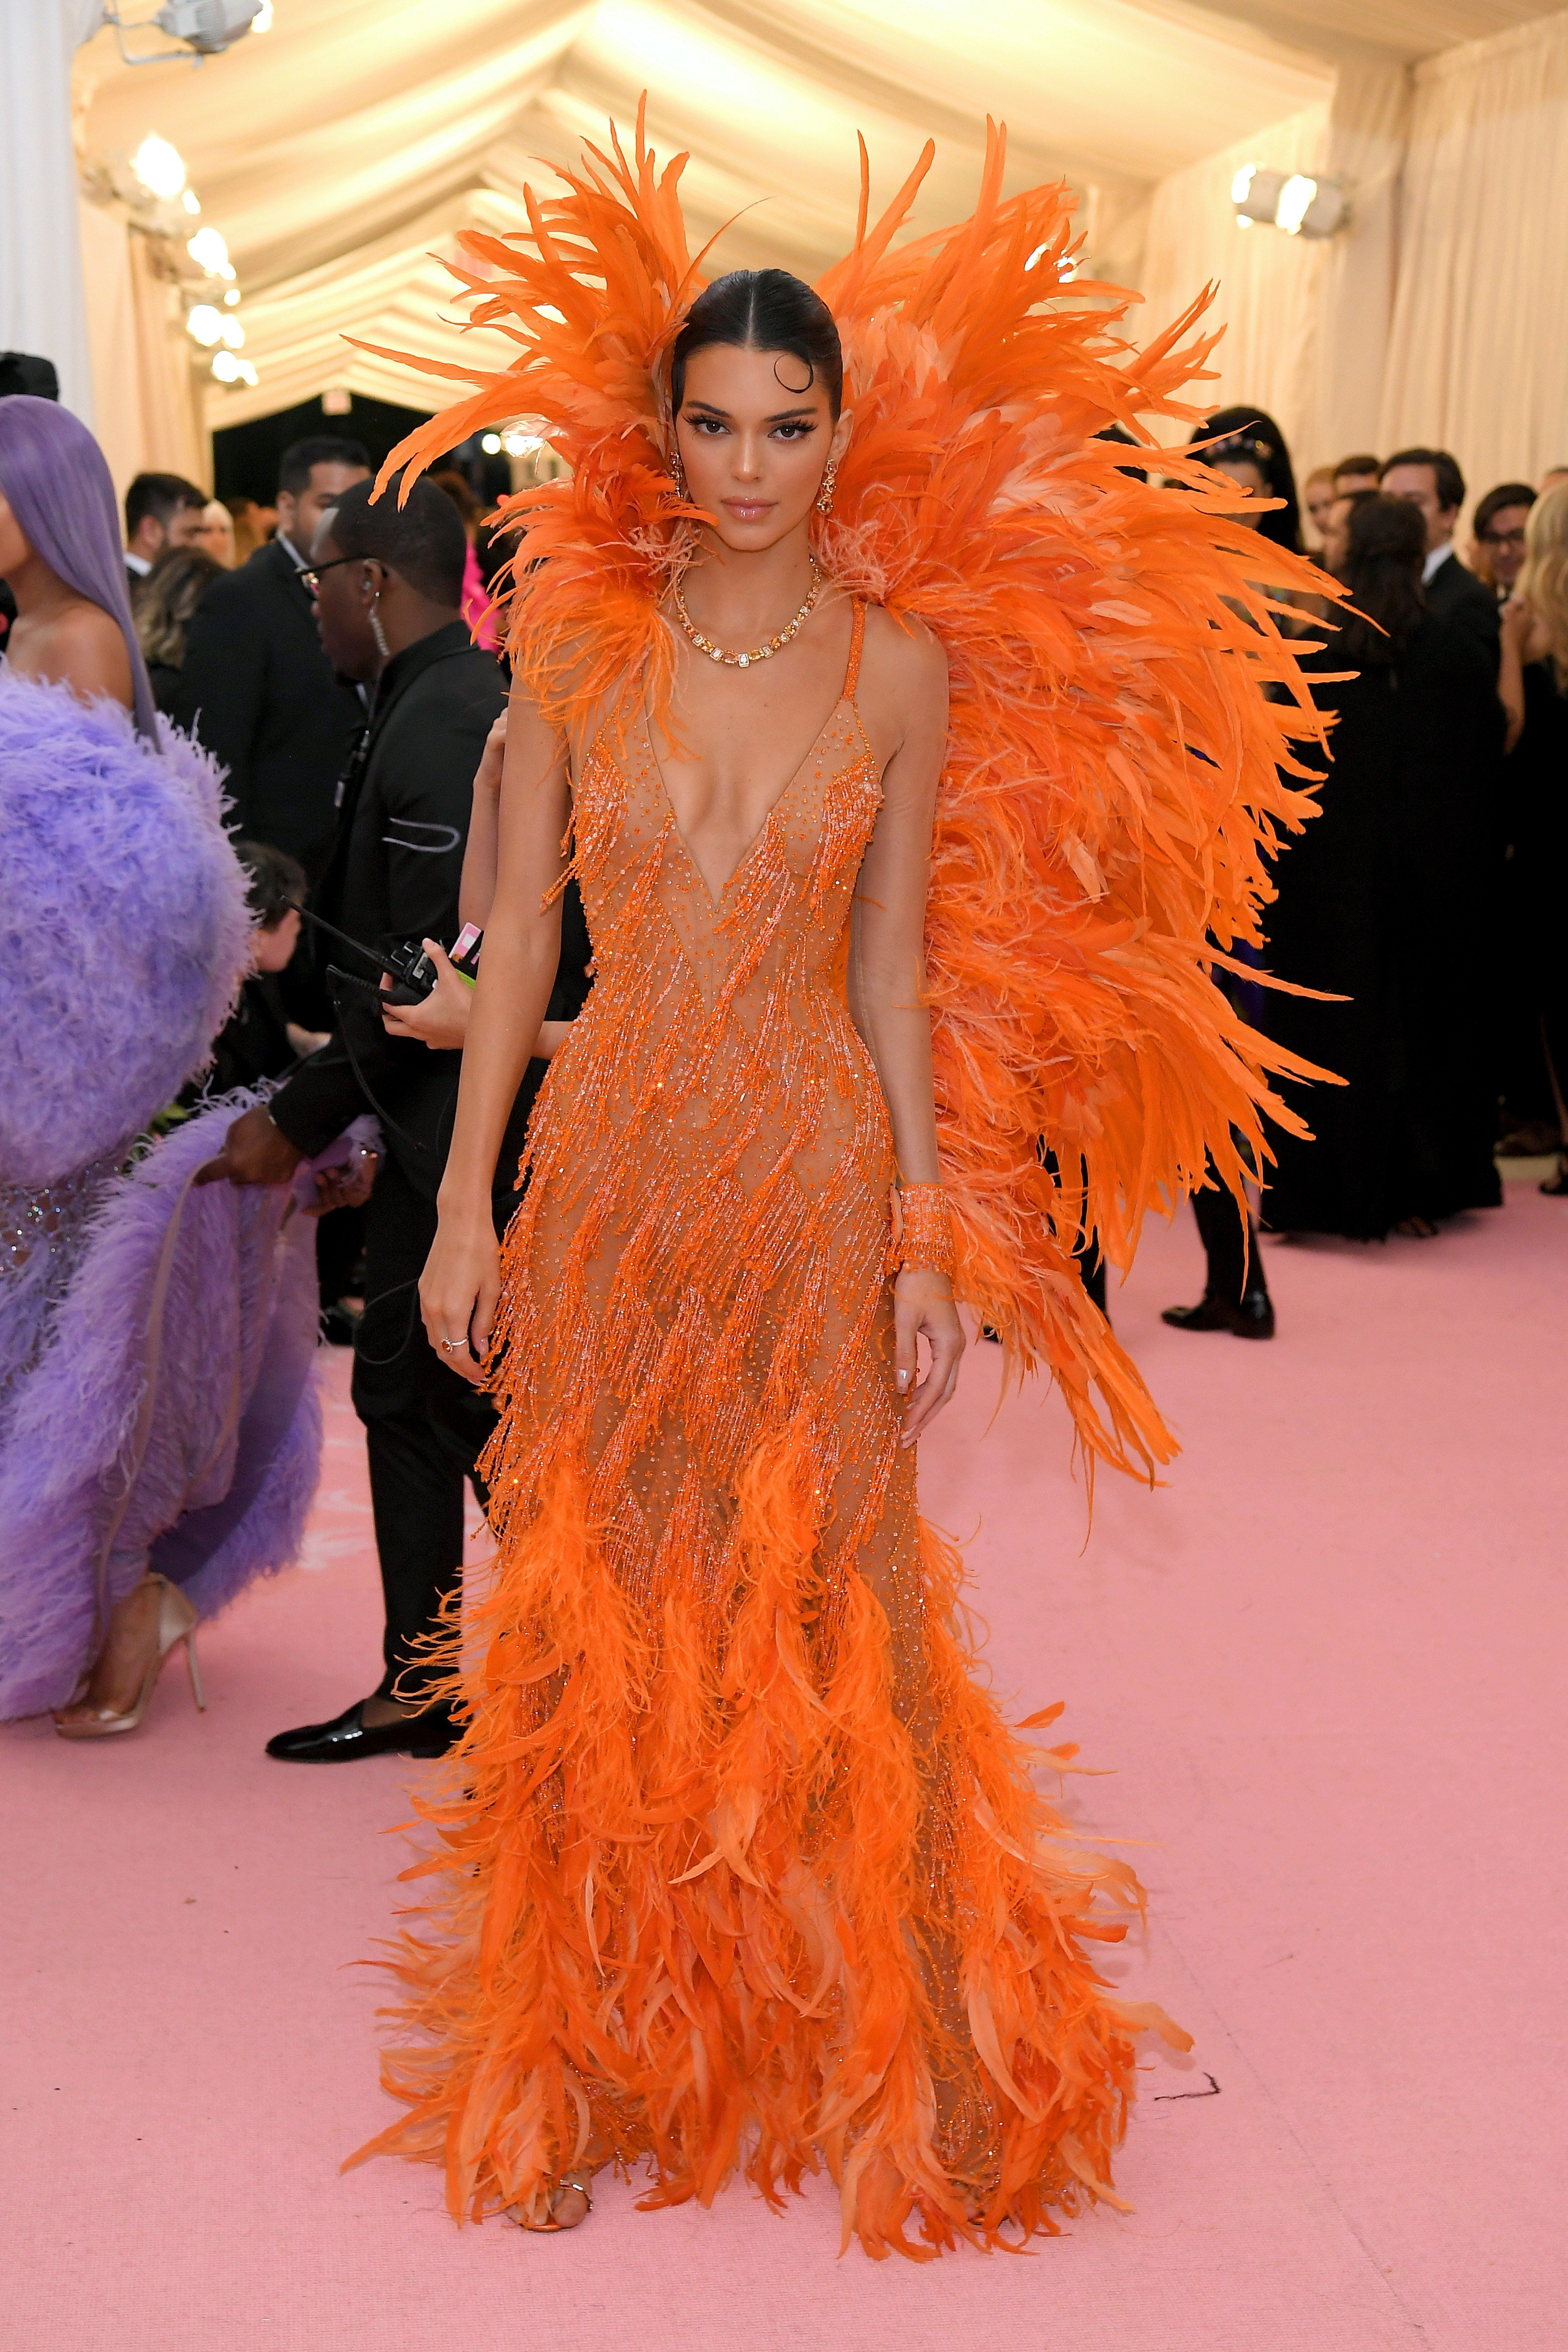 Met Gala 2019 Red Carpet: See All the Celebrity Dresses, Outfits, and Looks Here